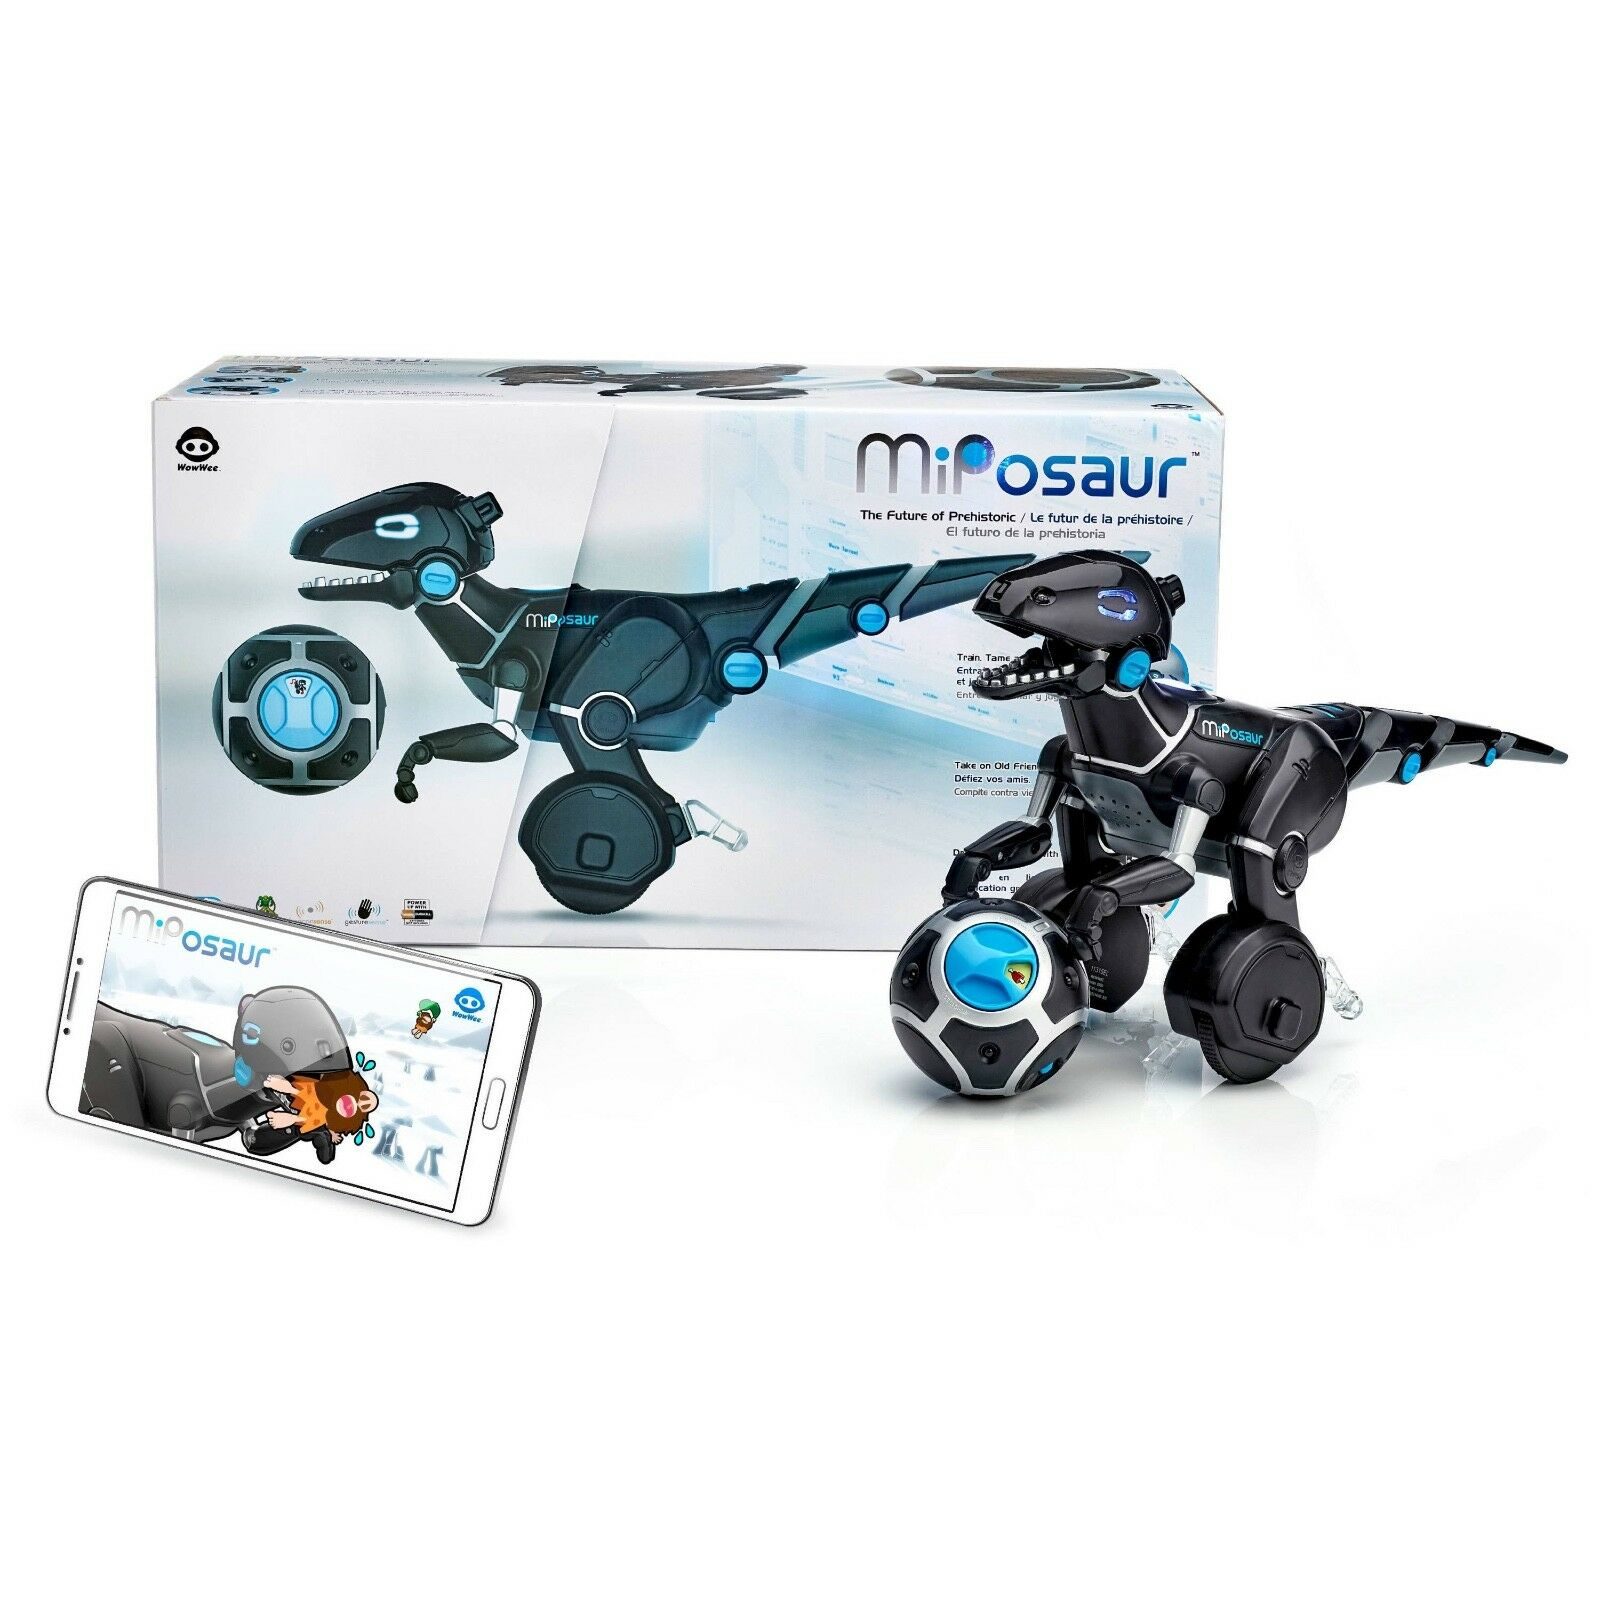 MIPOSAUR ROBOTIC DINOSAUR REMOTE CONTROLLED DUAL WHEEL WowWee NEW in Box